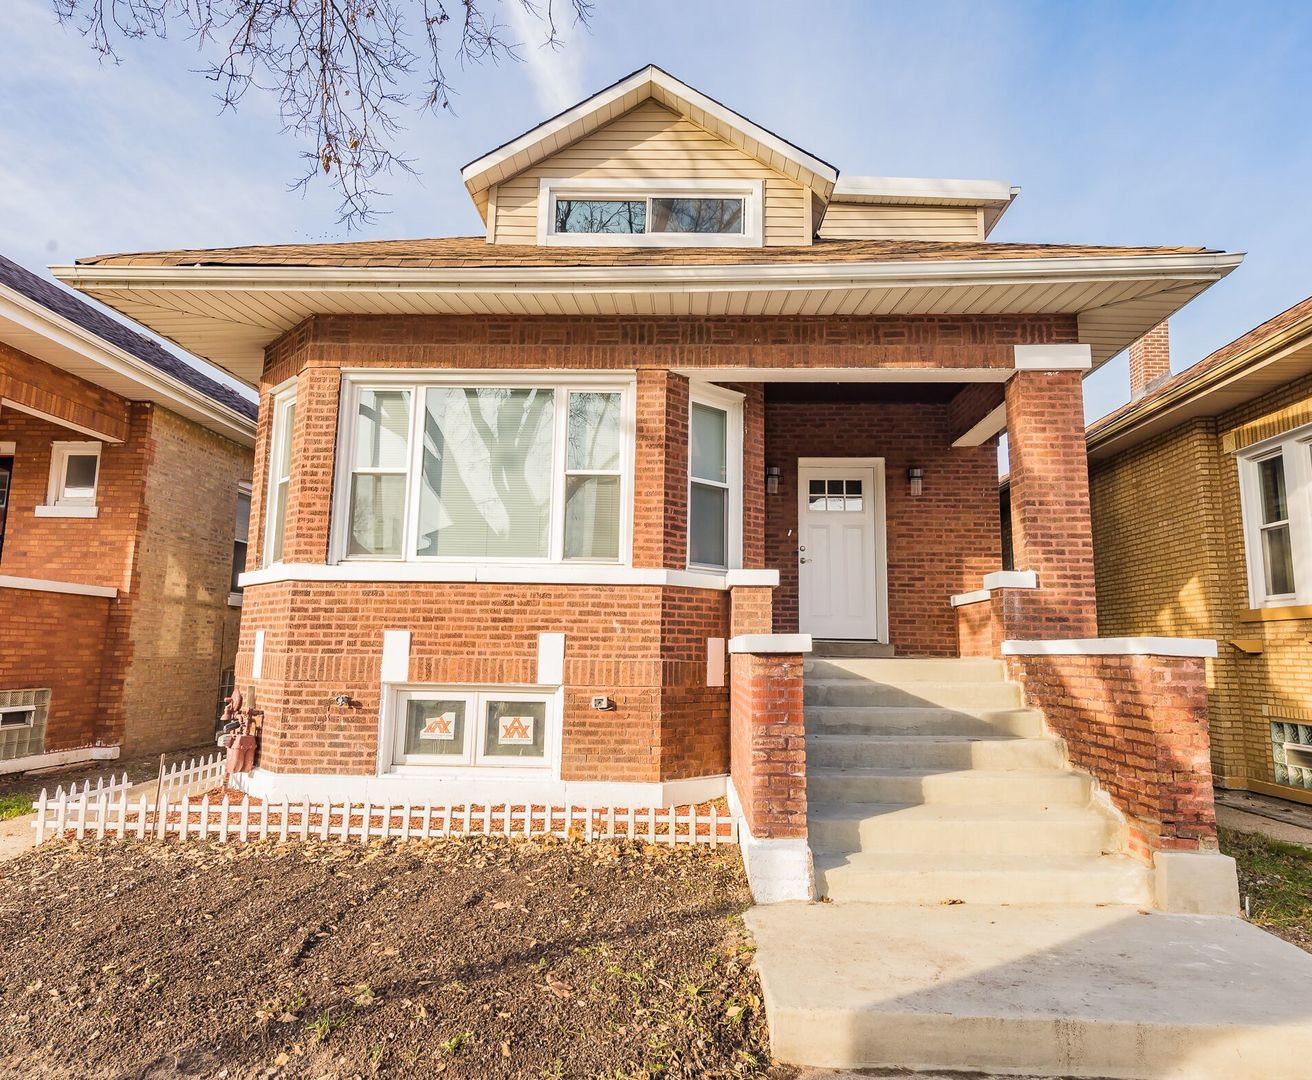 Photo for 8214 S Loomis Boulevard, Chicago, IL 60620 (MLS # 10582914)